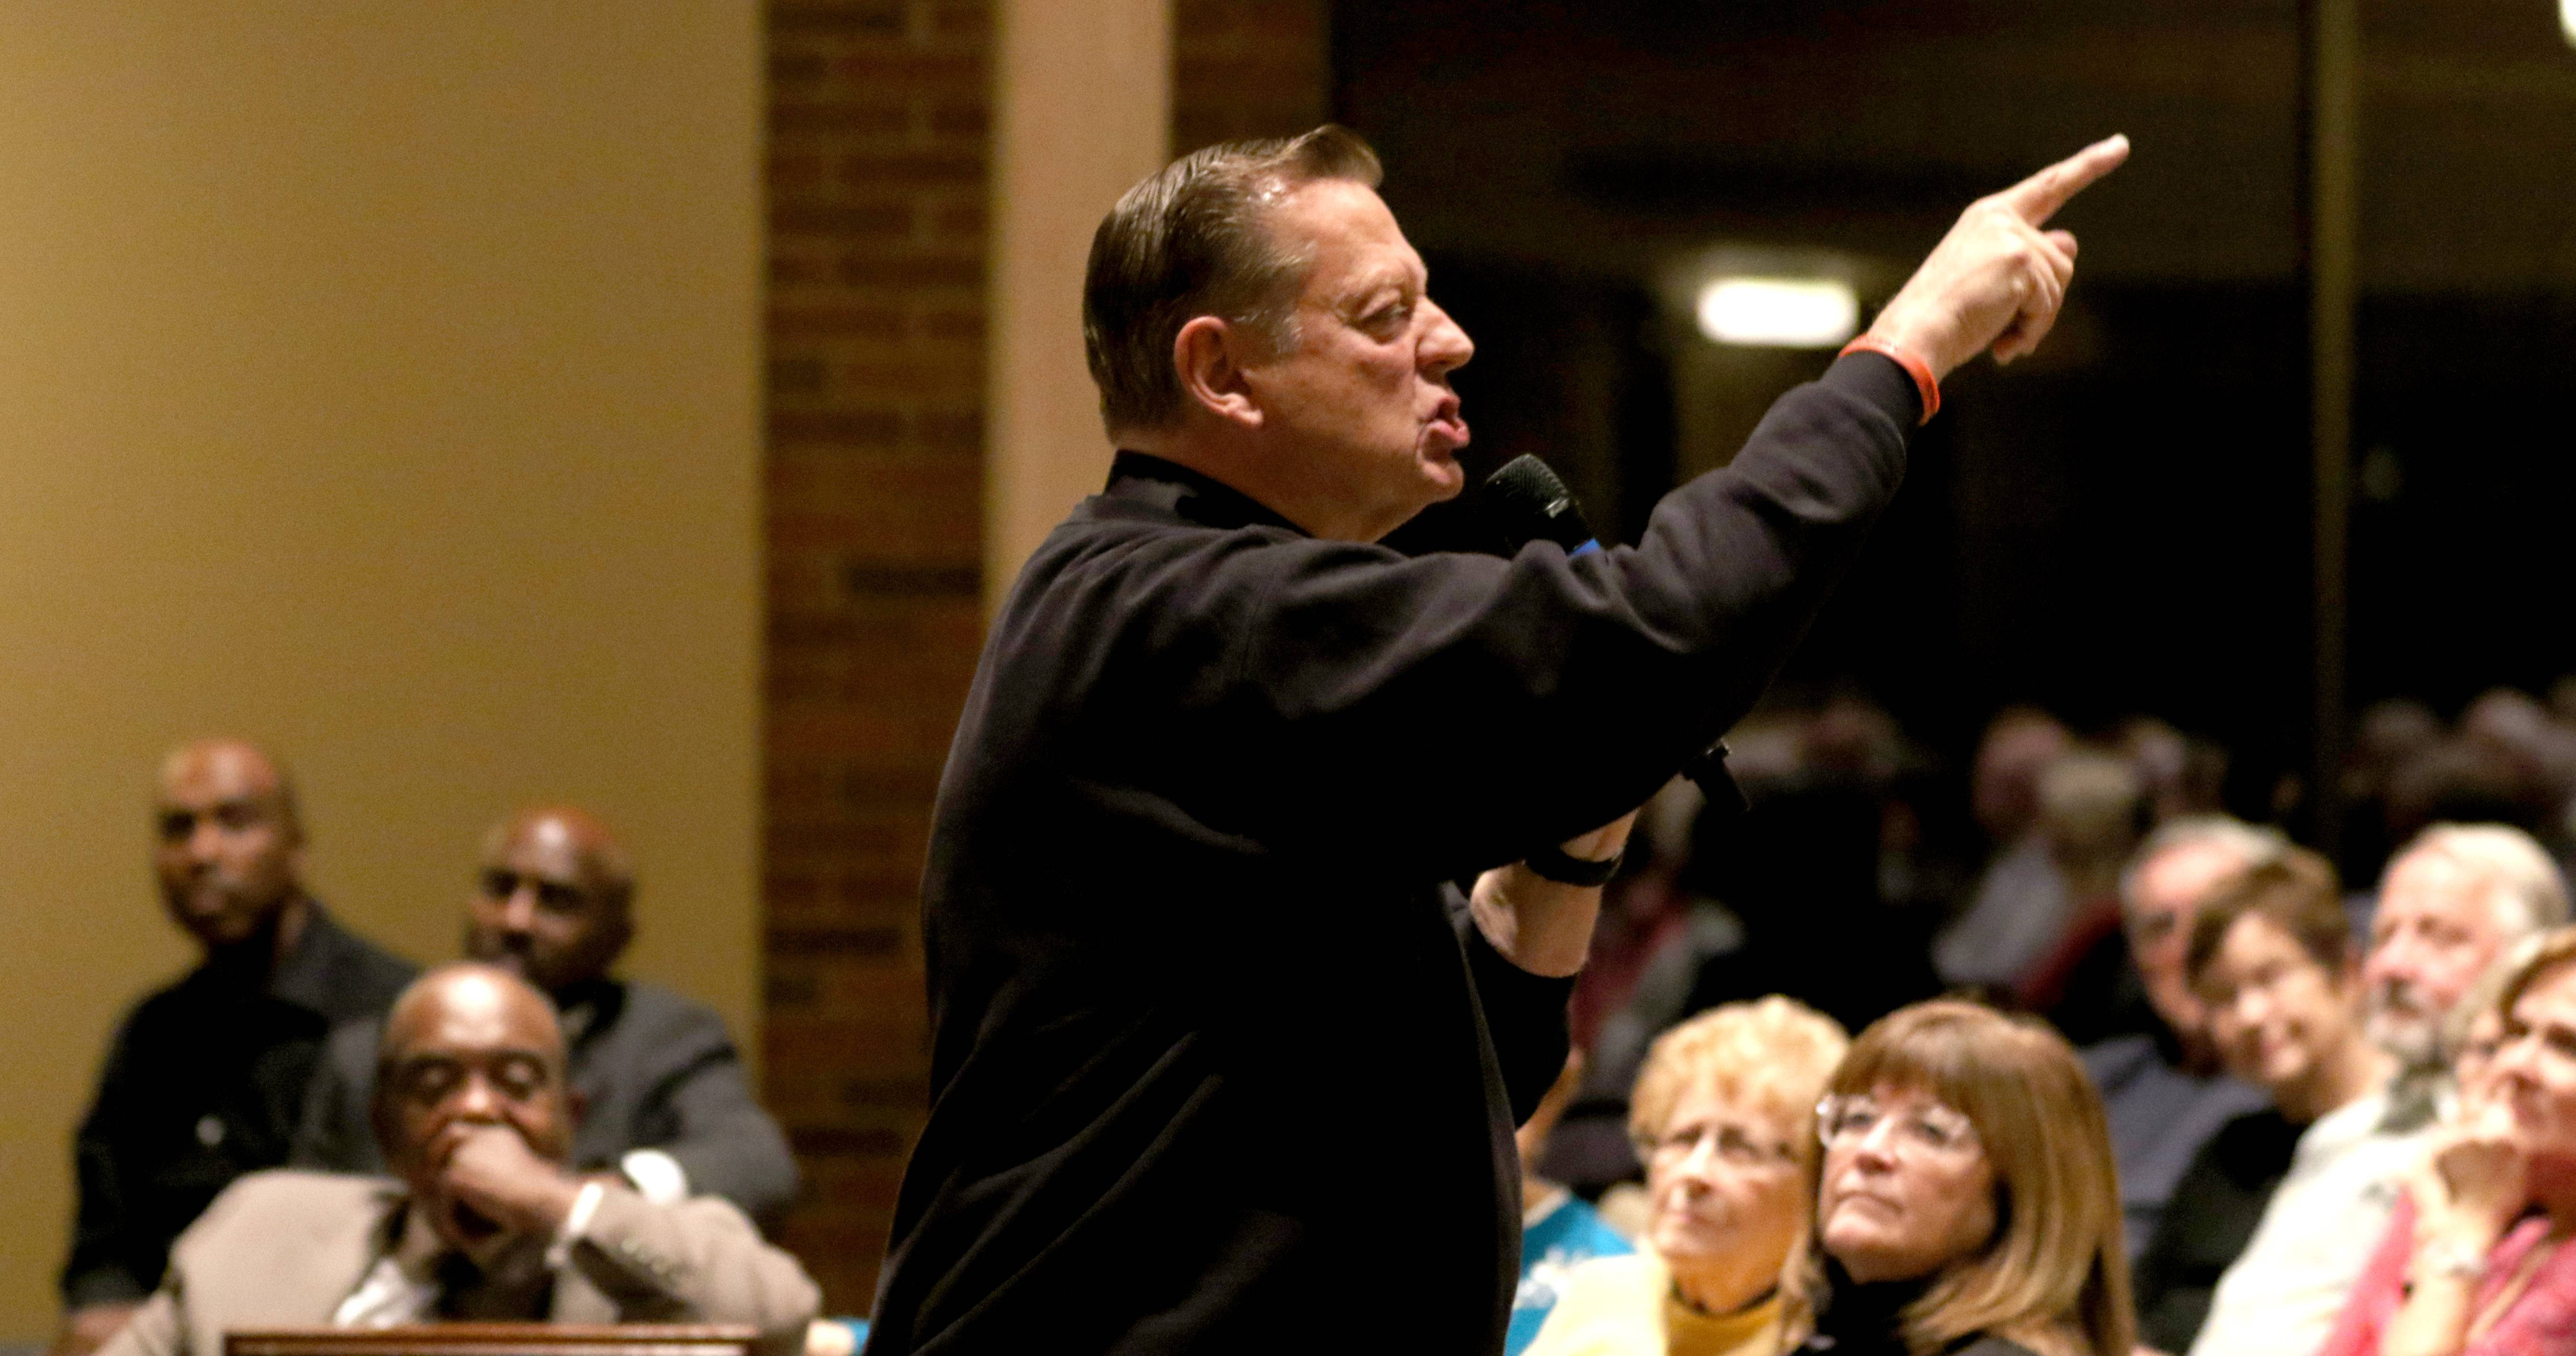 Father Pfleger at Arlington Heights church: Get off the sidelines and help